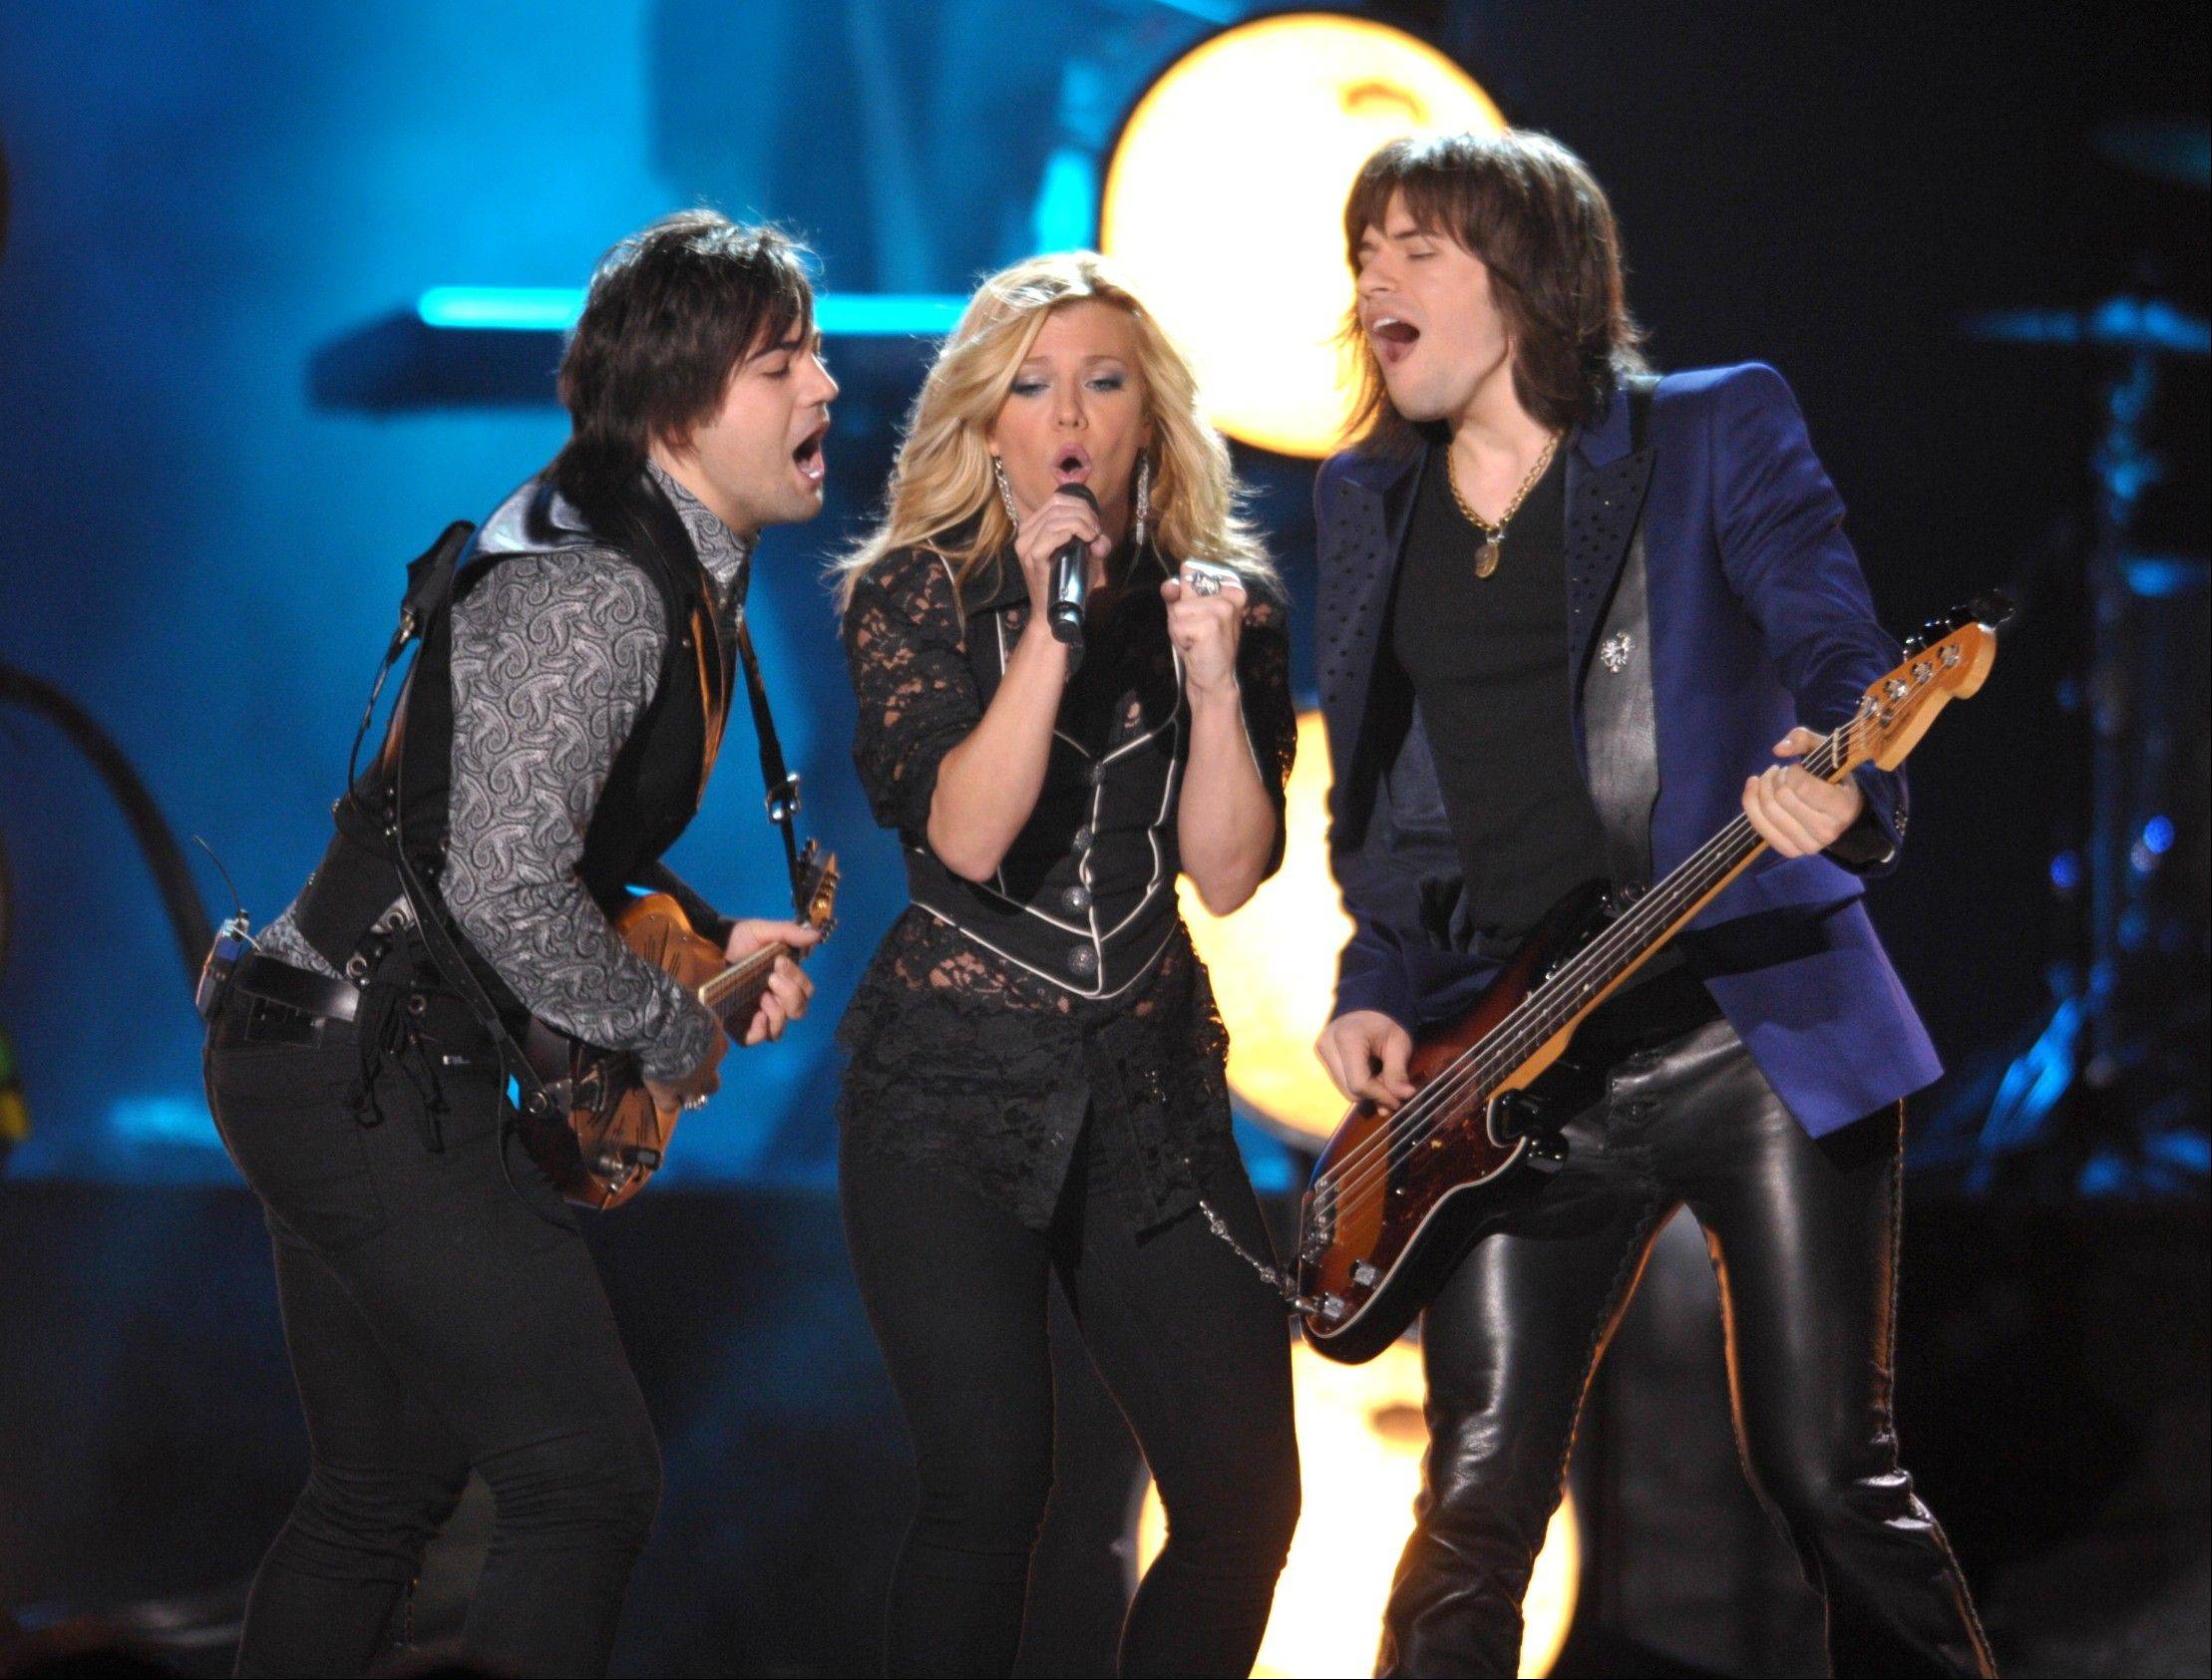 From left, Neil Perry, Kimberly Perry and Reid Perry of The Band Perry perform at the 2012 CMT Music Awards on Wednesday, June 6, 2012 in Nashville, Tenn.